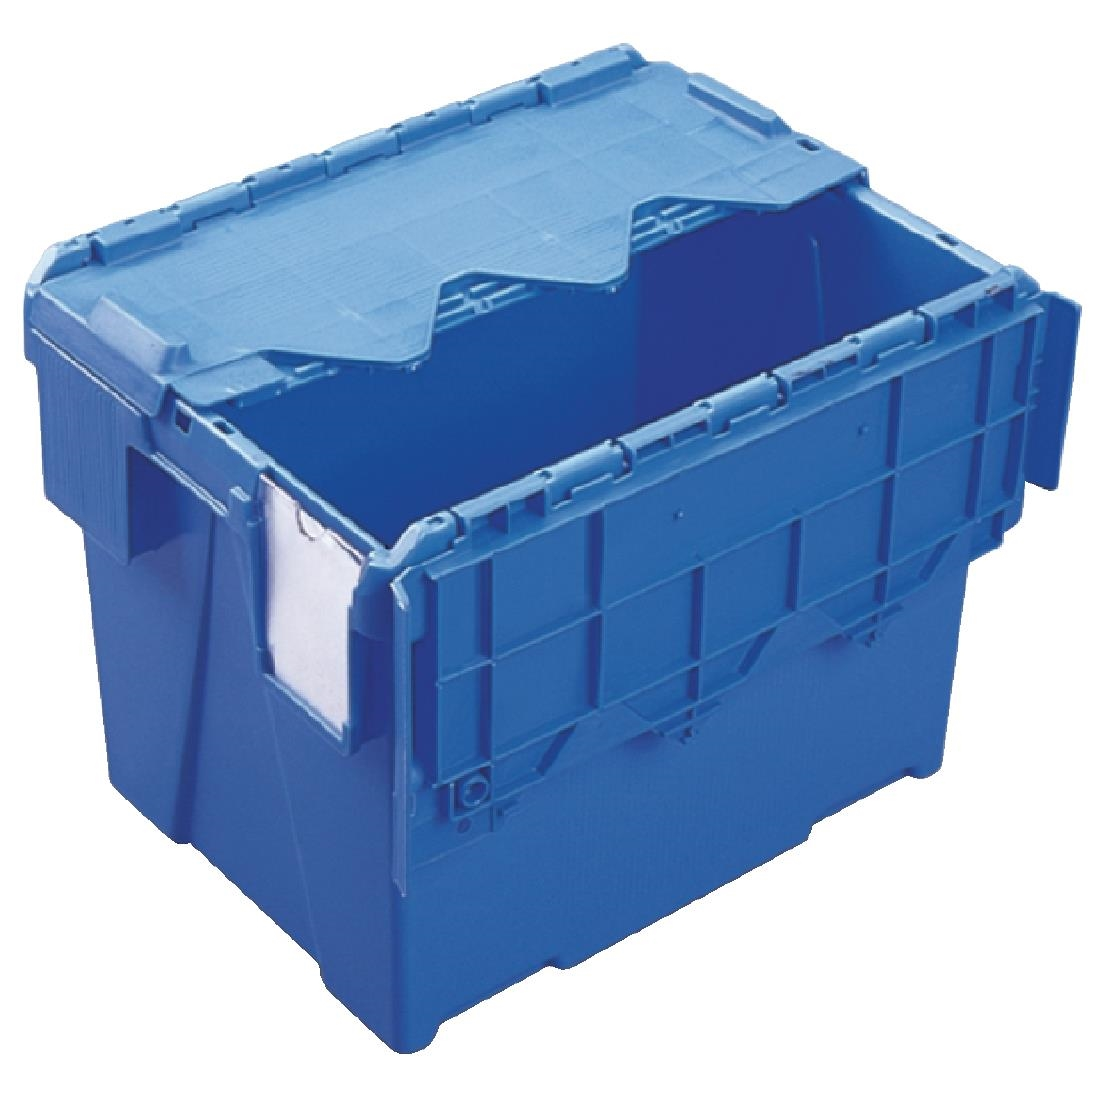 polypropylene tote box blue 25ltr - cf810 - buy online at nisbets